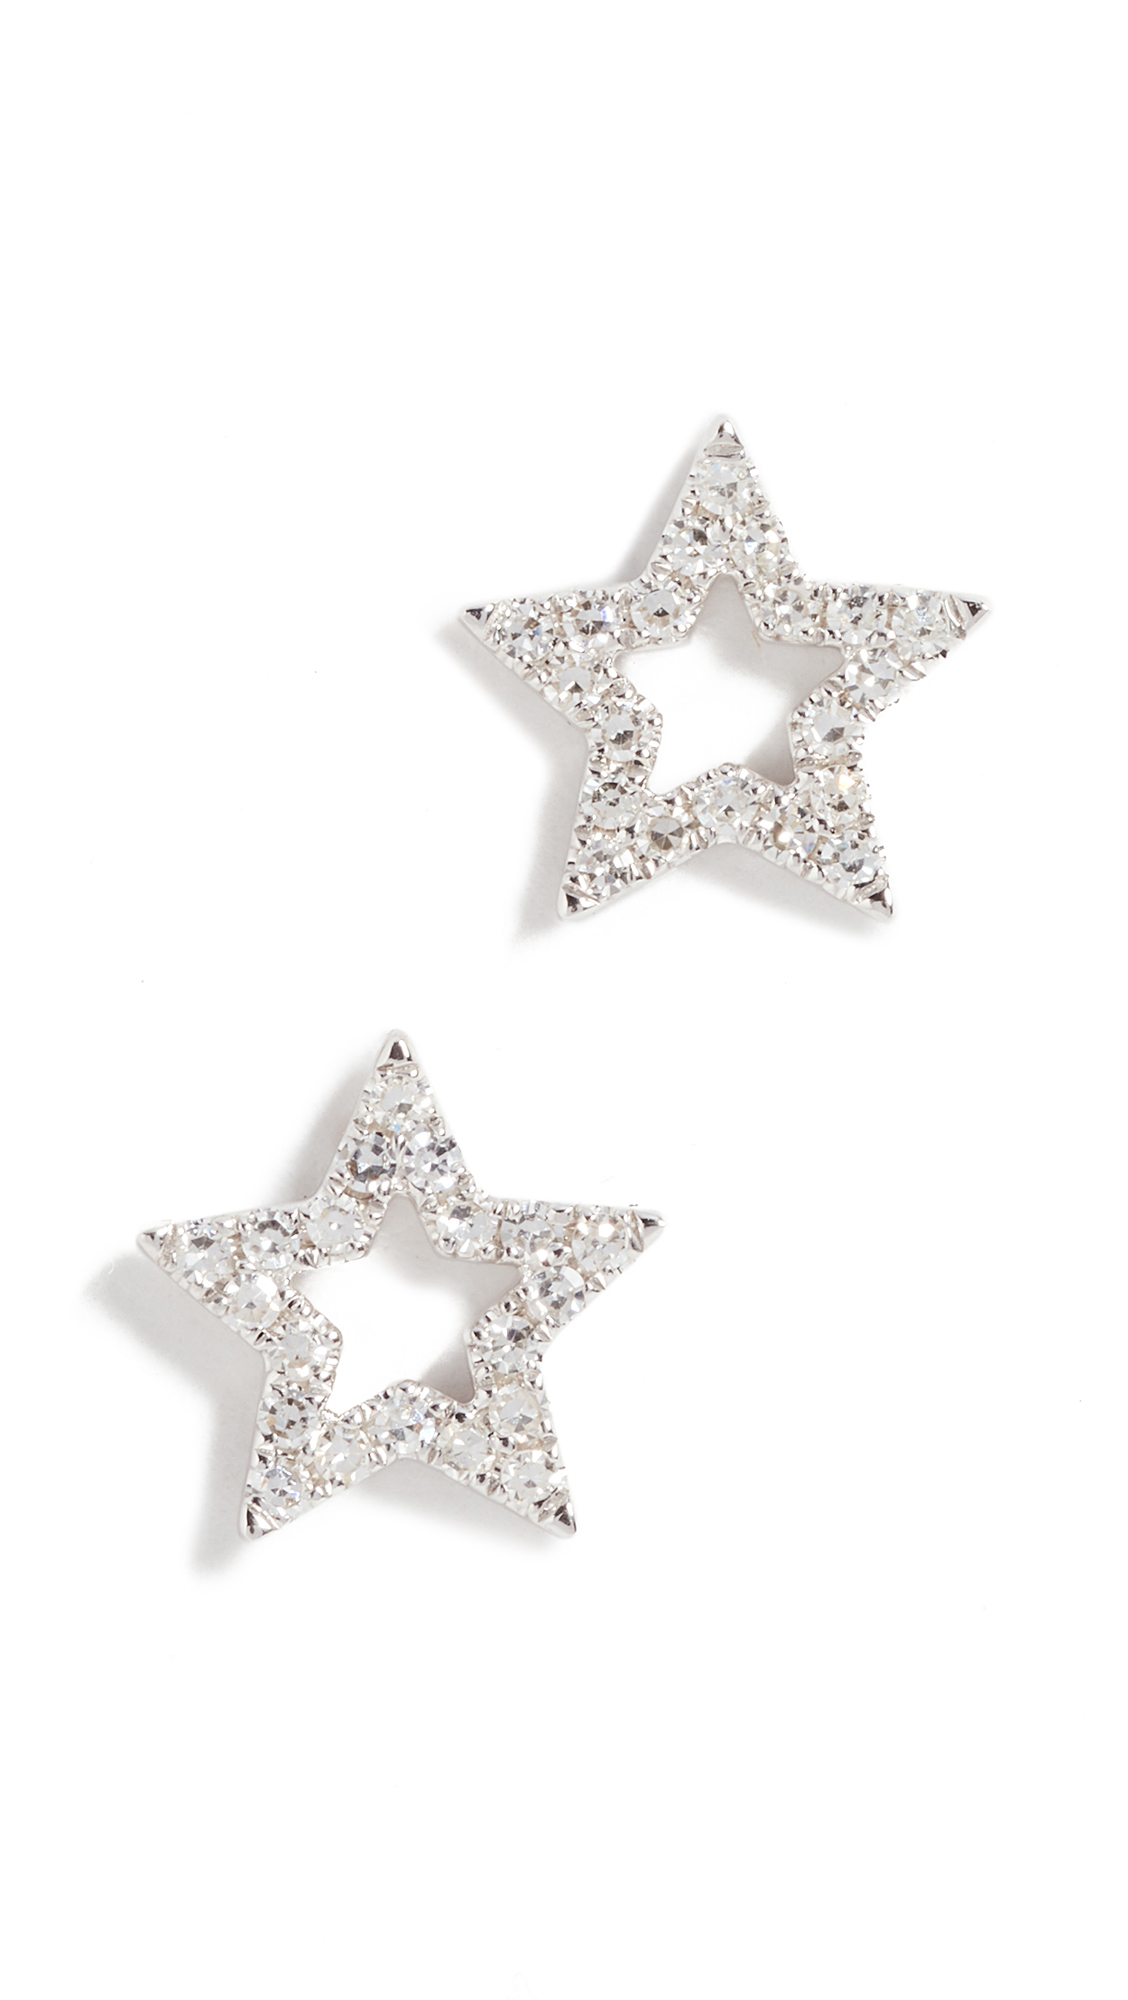 EF COLLECTION 14K Gold Diamond Open Star Stud Earrings in White Gold